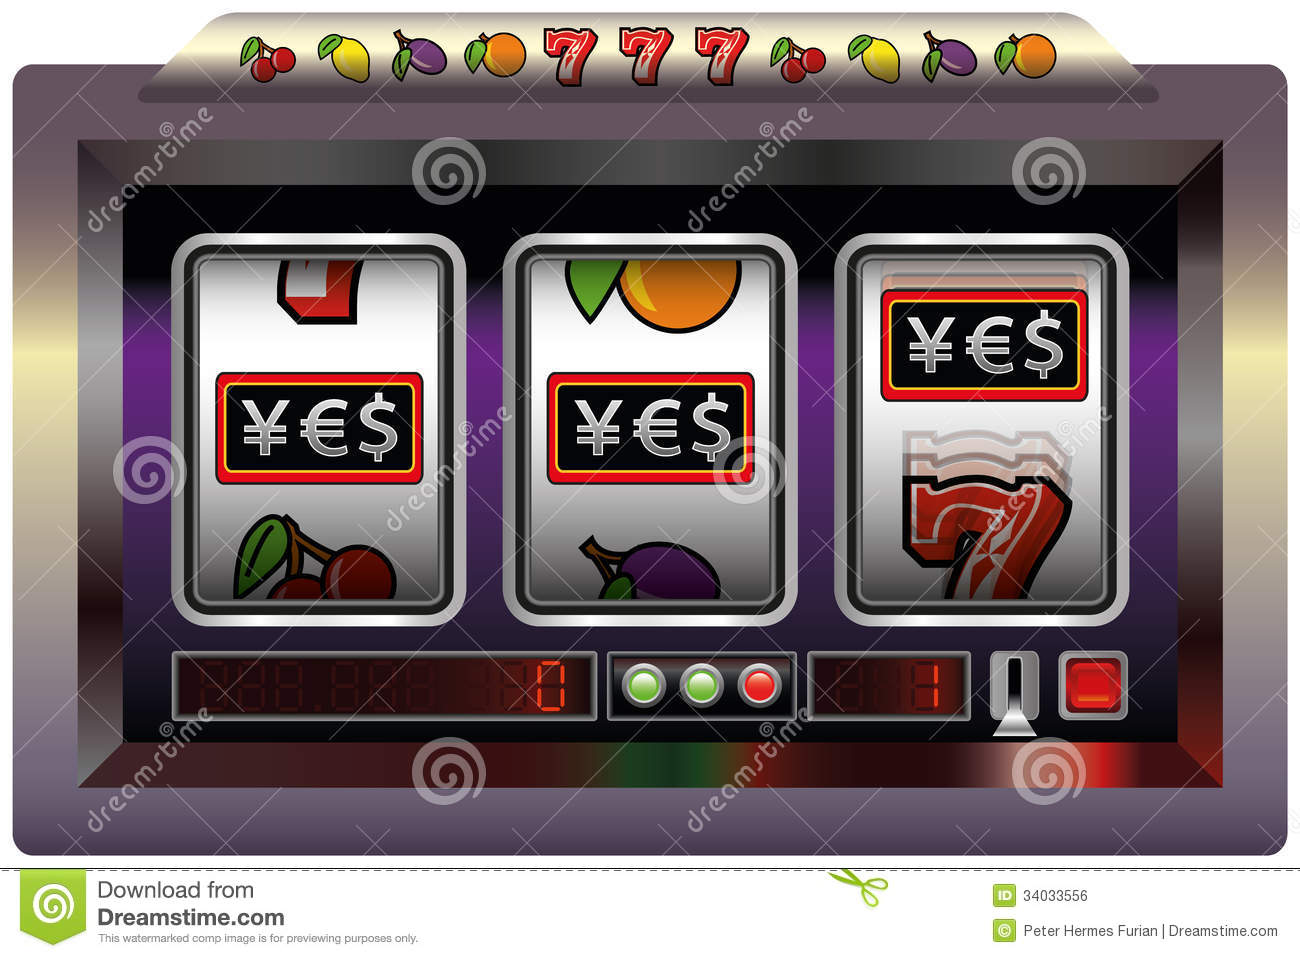 slot yes gratis